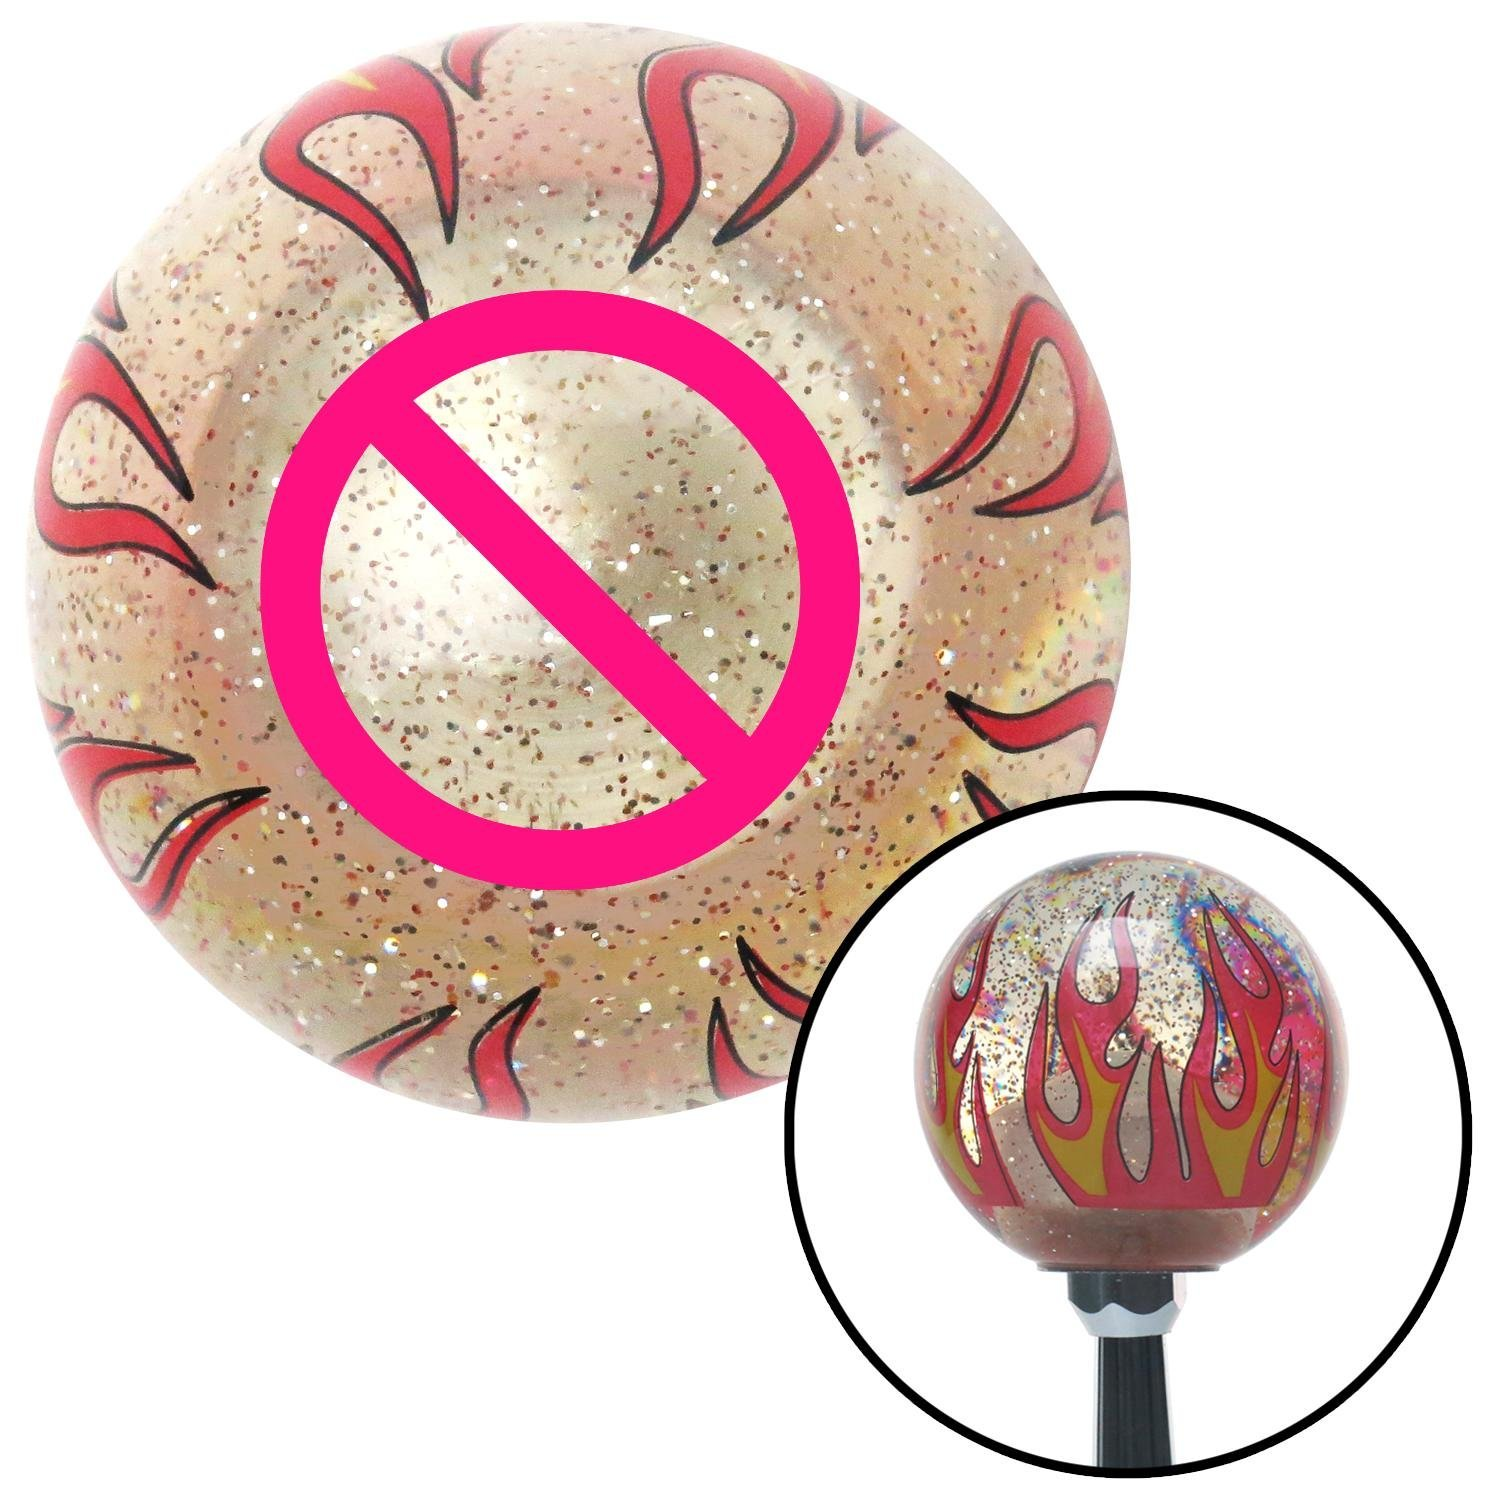 American Shifter 231517 Clear Flame Metal Flake Shift Knob with M16 x 1.5 Insert Pink NO Symbol